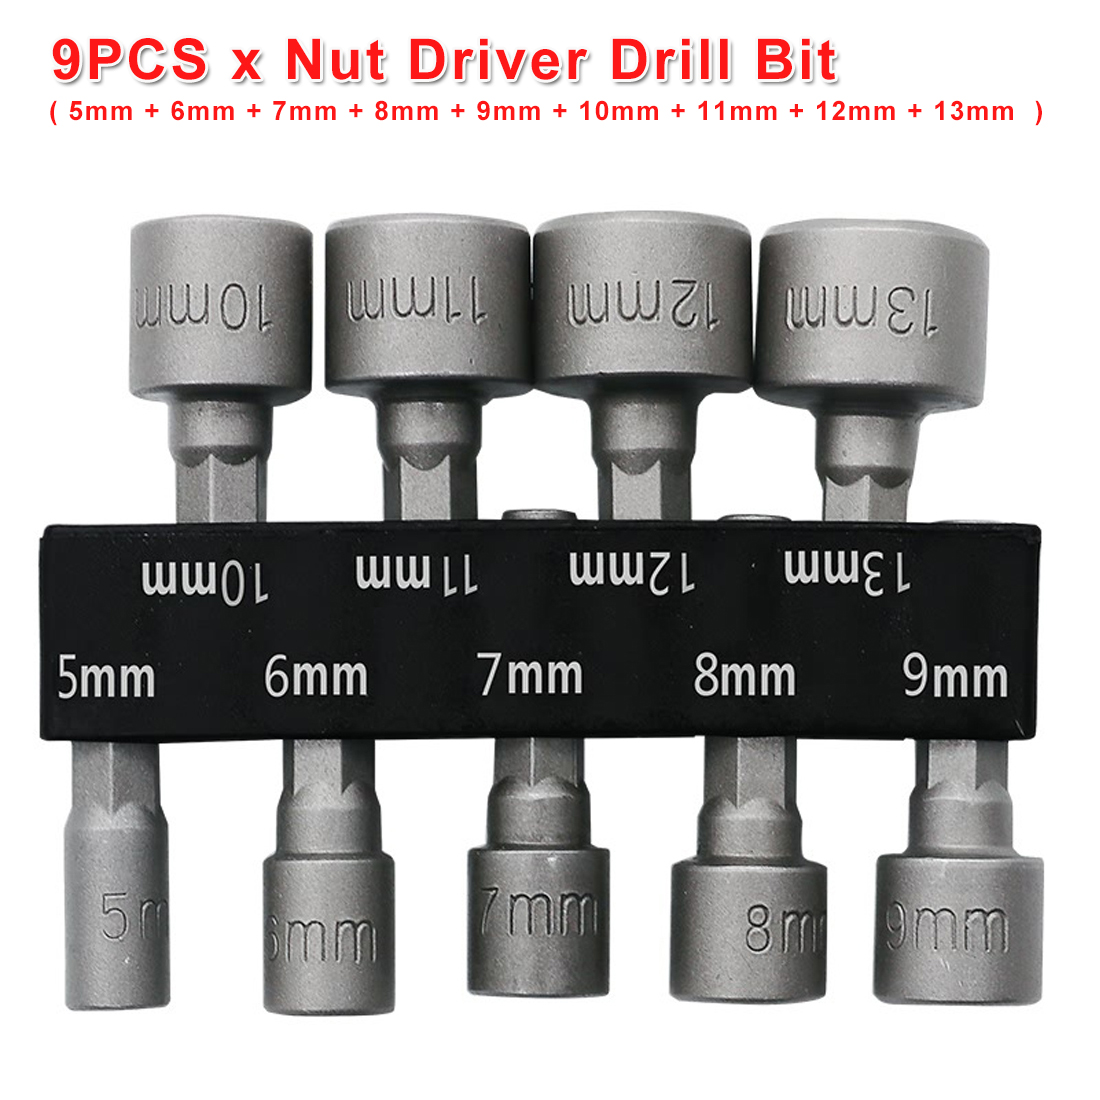 9pcs 1/4 Hex Shank Power Nut Driver Drill Bit Socket Wrench Screw 5-13mm Nut Driver Set Socket Adapter For Tighten/ Loose Screws